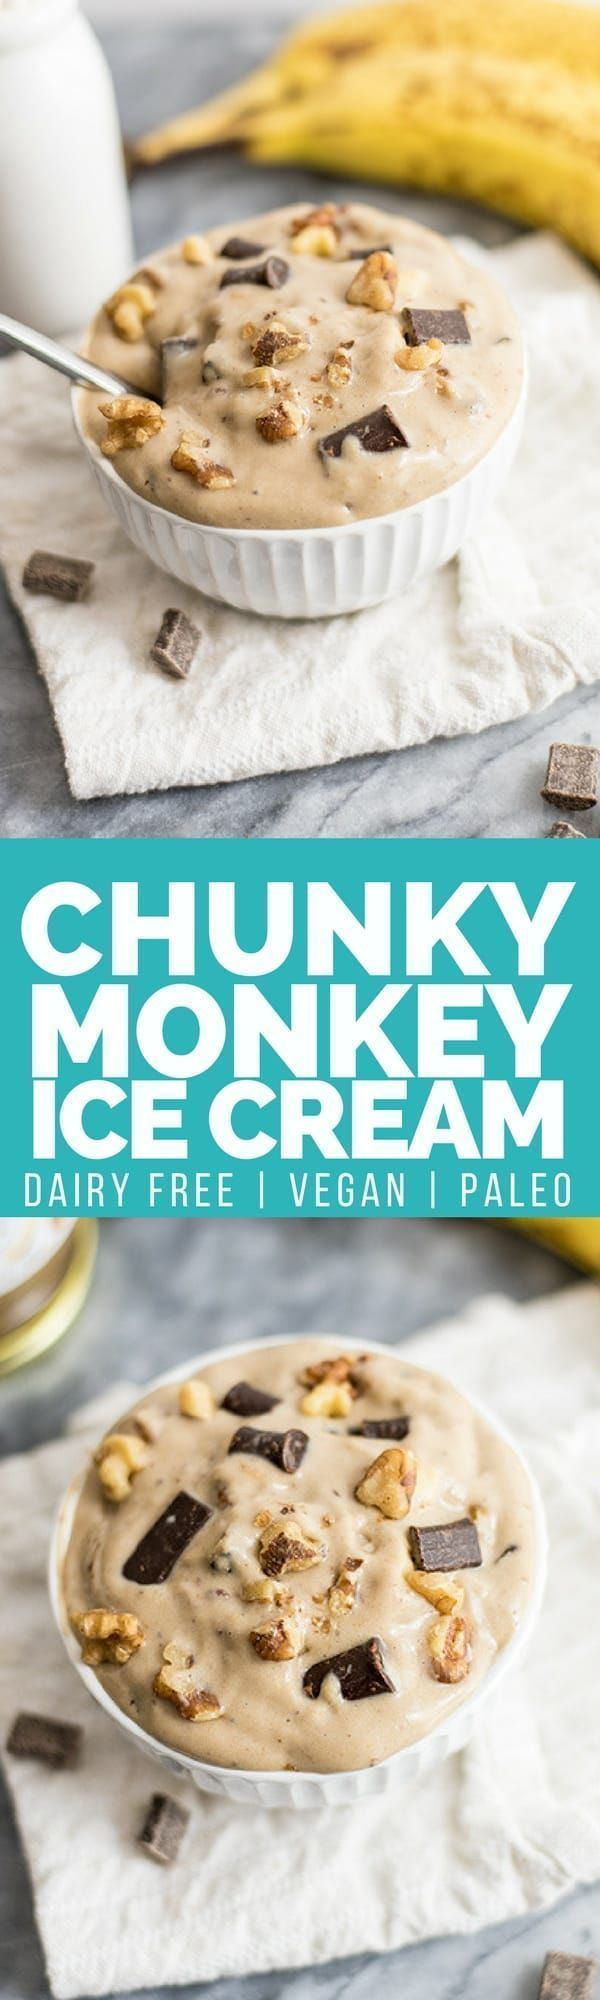 This homemade chunky monkey ice cream is the perfect sweet treat! Vegan, dairy free, and has a paleo option as well! No ice cream maker required! #vegan #dairyfree #icecream #paleo